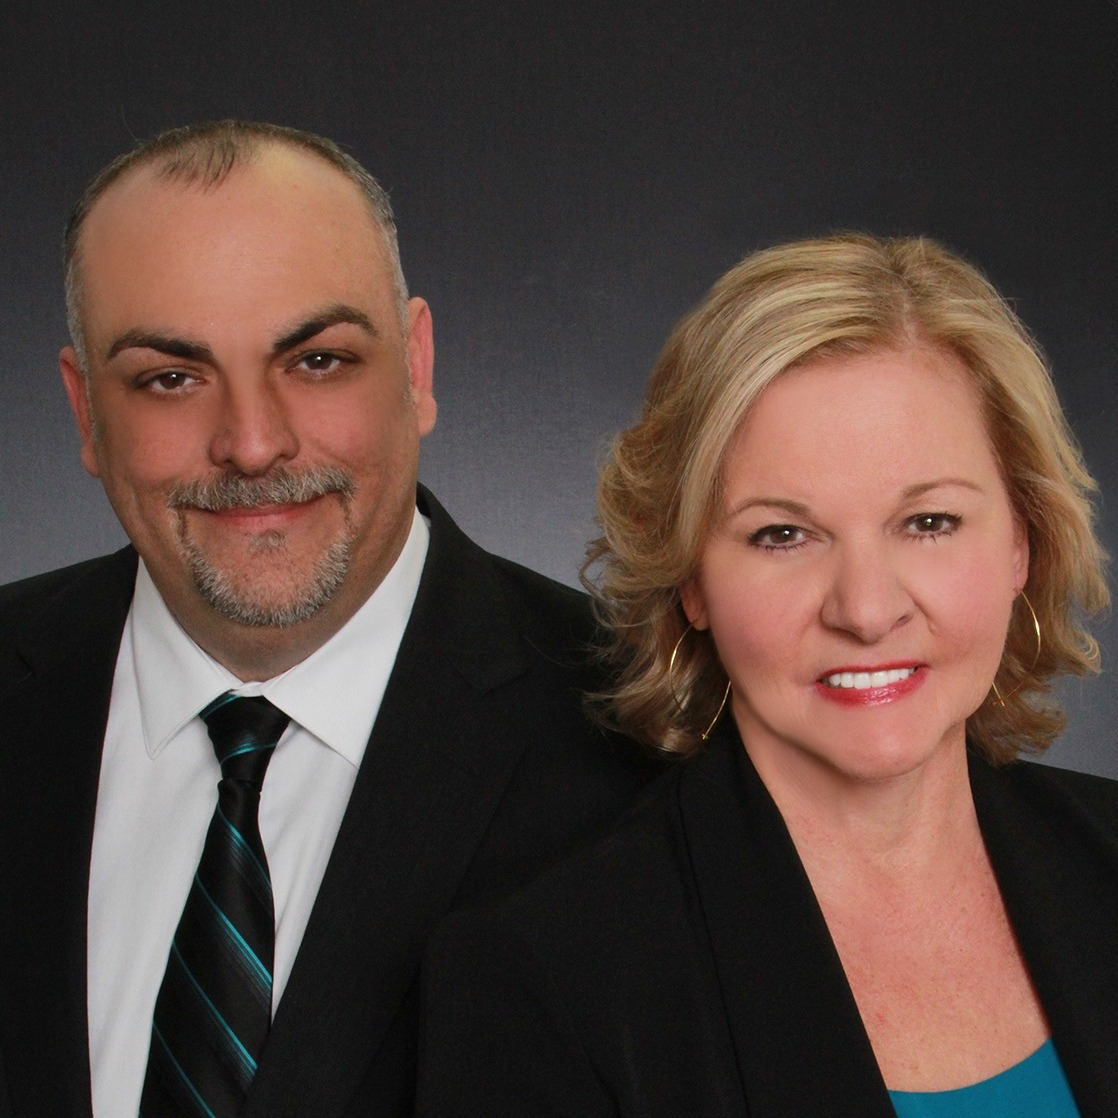 Bob and Angela PowellEXIT Team Realty